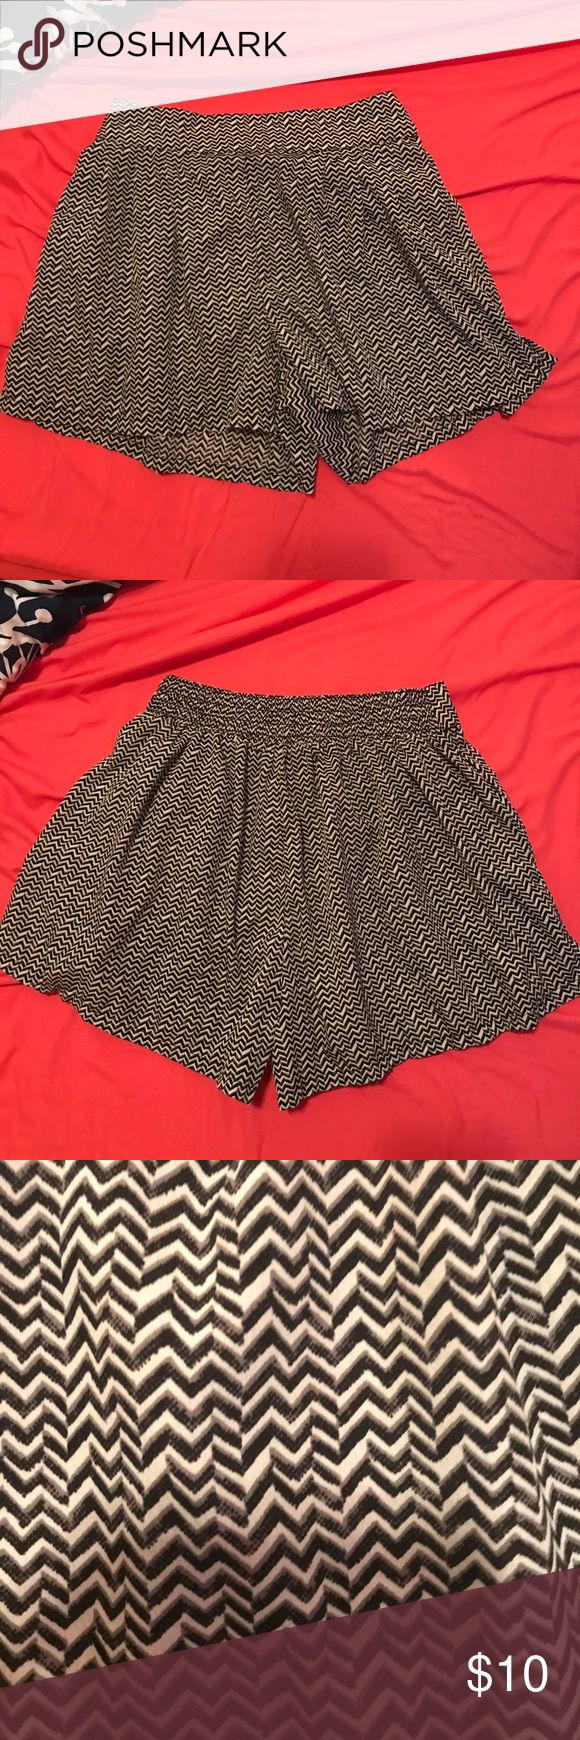 AE: Chevron Strip Flowy Shorts with Pockets In great condition. Made with soft material. Black and white chevron striped shorts with pockets. American Eagle Outfitters Shorts